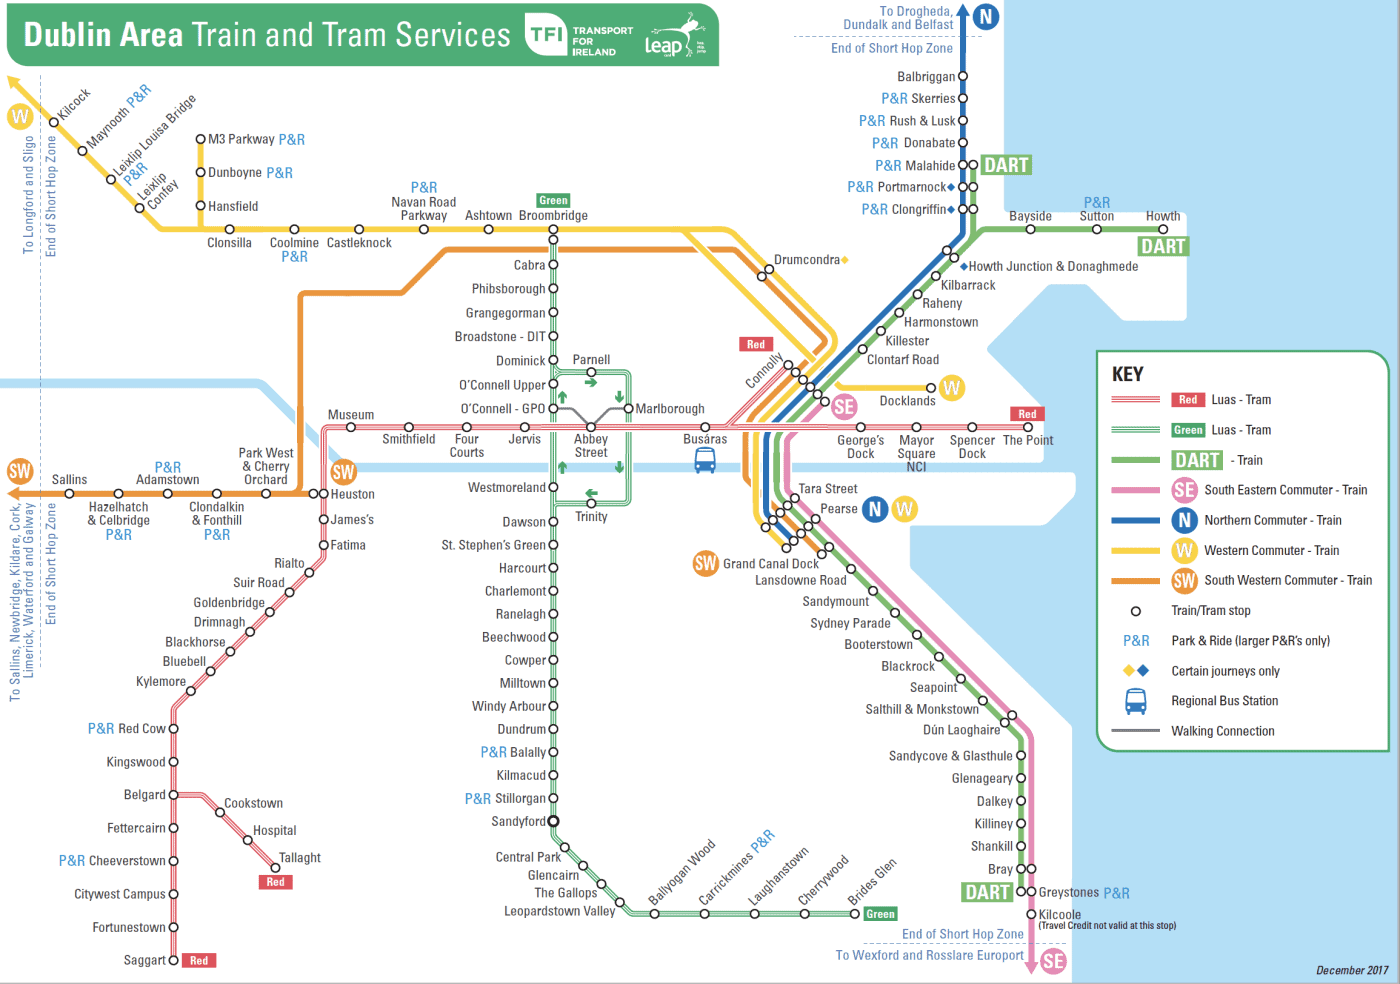 Dublin Area Transit Map